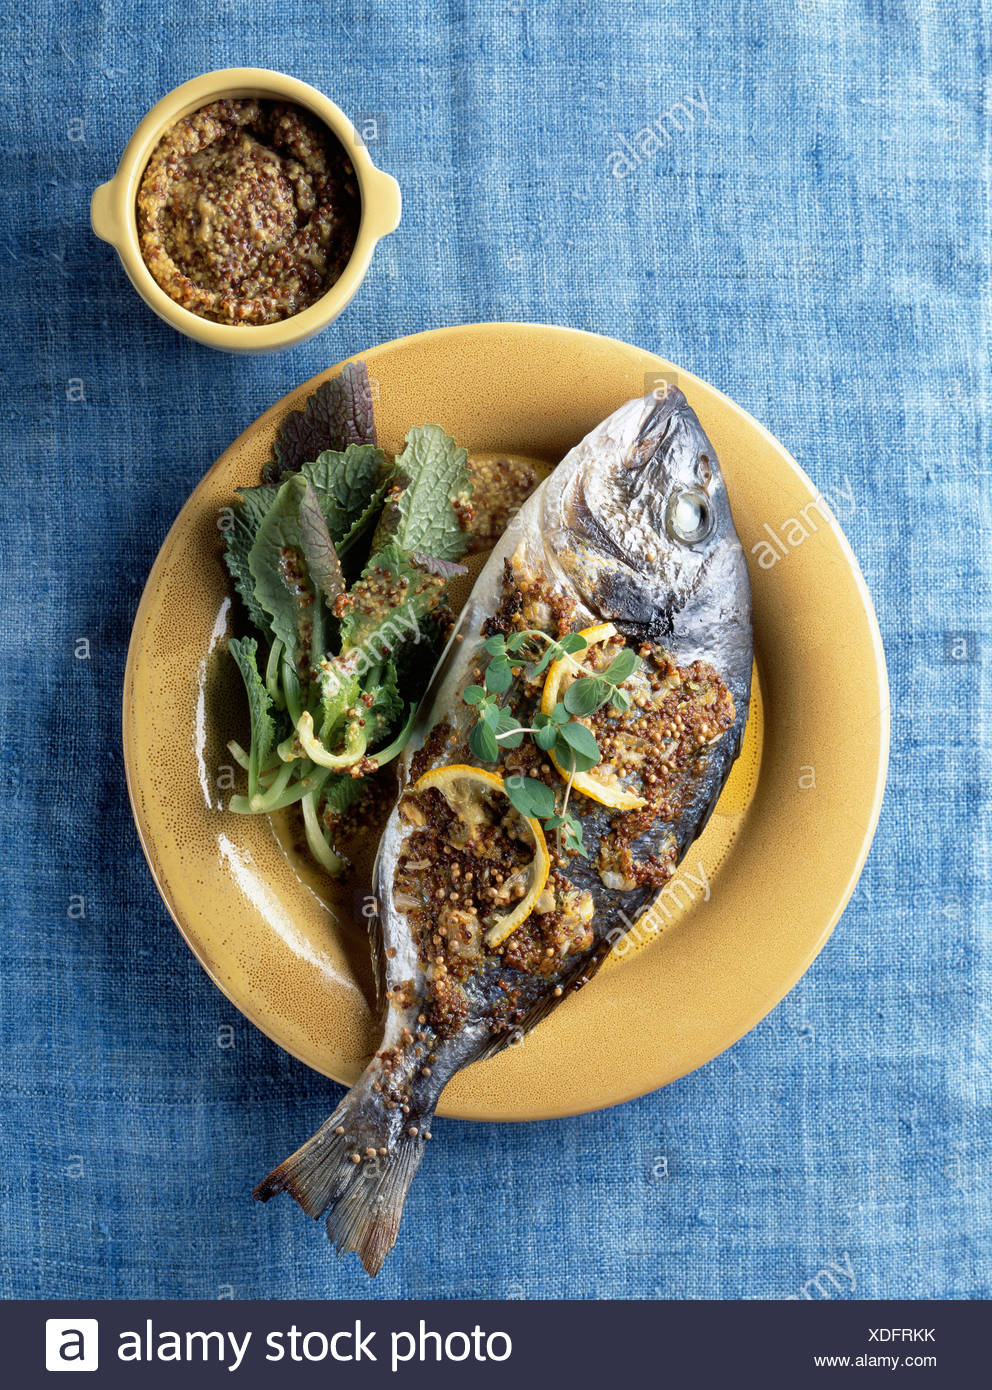 Sea bream baked in traditional grained mustard - Stock Image